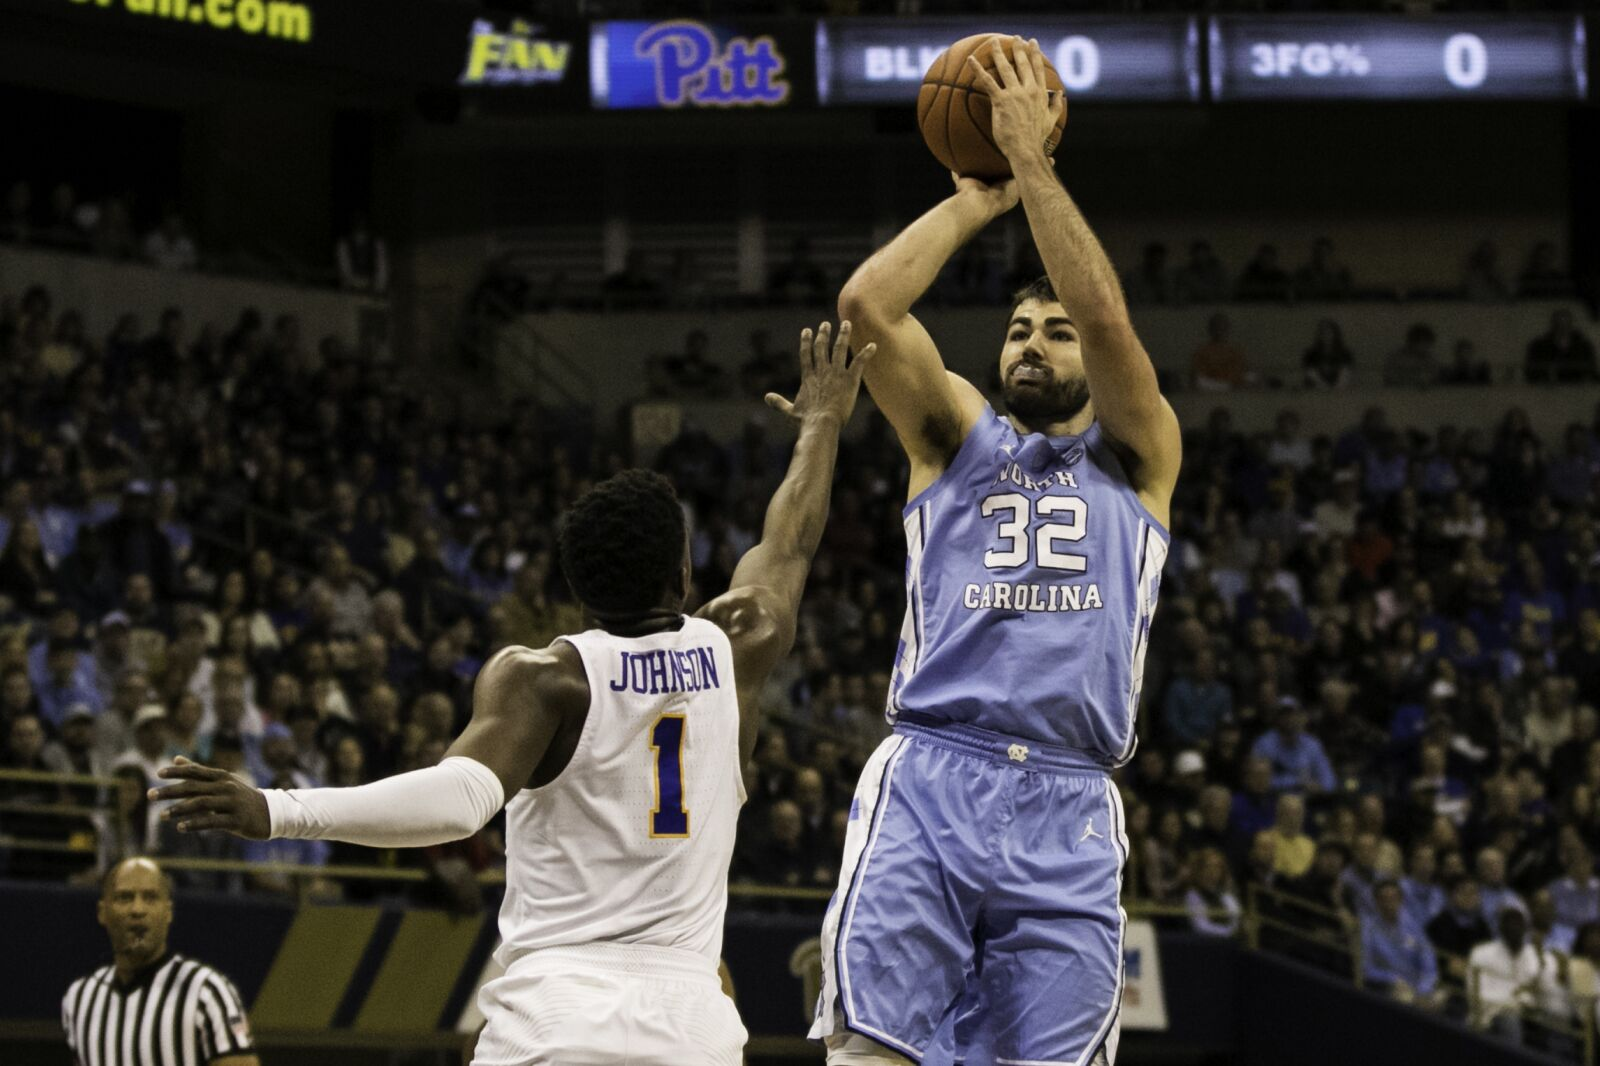 PITTSBURGH, PA -JANUARY 05: North Carolina Tar Heels forward Luke Maye (32) shoots a jump shot during the college basketball game between the North Carolina Tar Heels and the Pittsburgh Panthers on January 05, 2019 at the Petersen Events Center in Pittsburgh, PA. (Photo by Mark Alberti/Icon Sportswire via Getty Images)